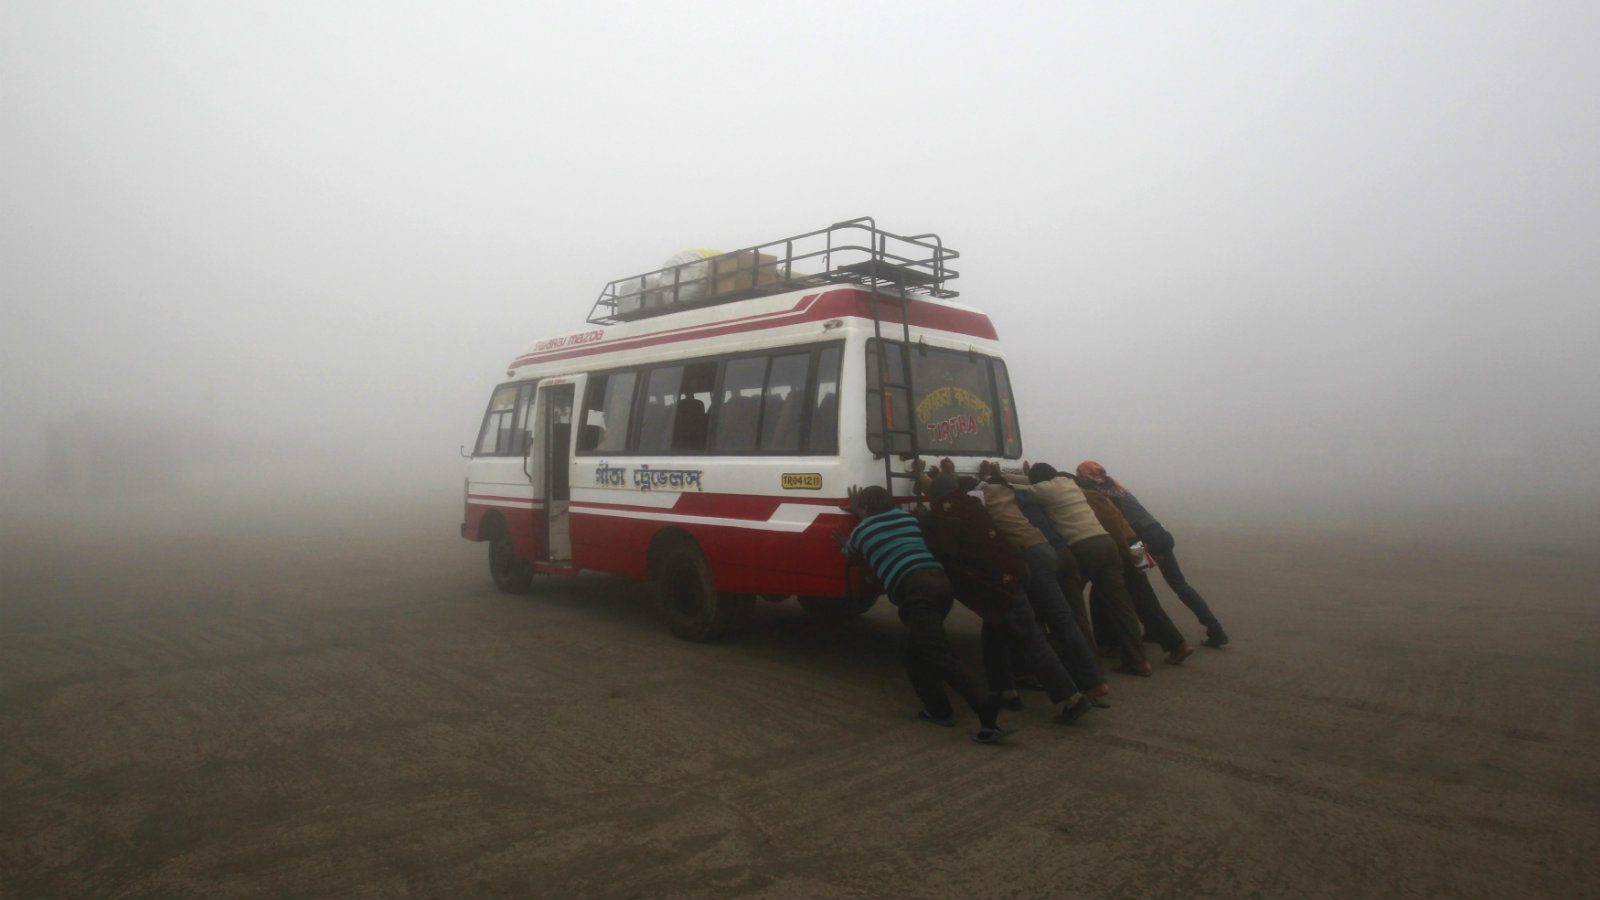 Passengers push their bus to start it amid dense fog on a cold winter morning on the outskirts of Agartala, capital of India's northeastern state of Tripura, January 7, 2014. Cold wave conditions continue across most parts of north India with temperatures at most places remaining below normal, local media reported.